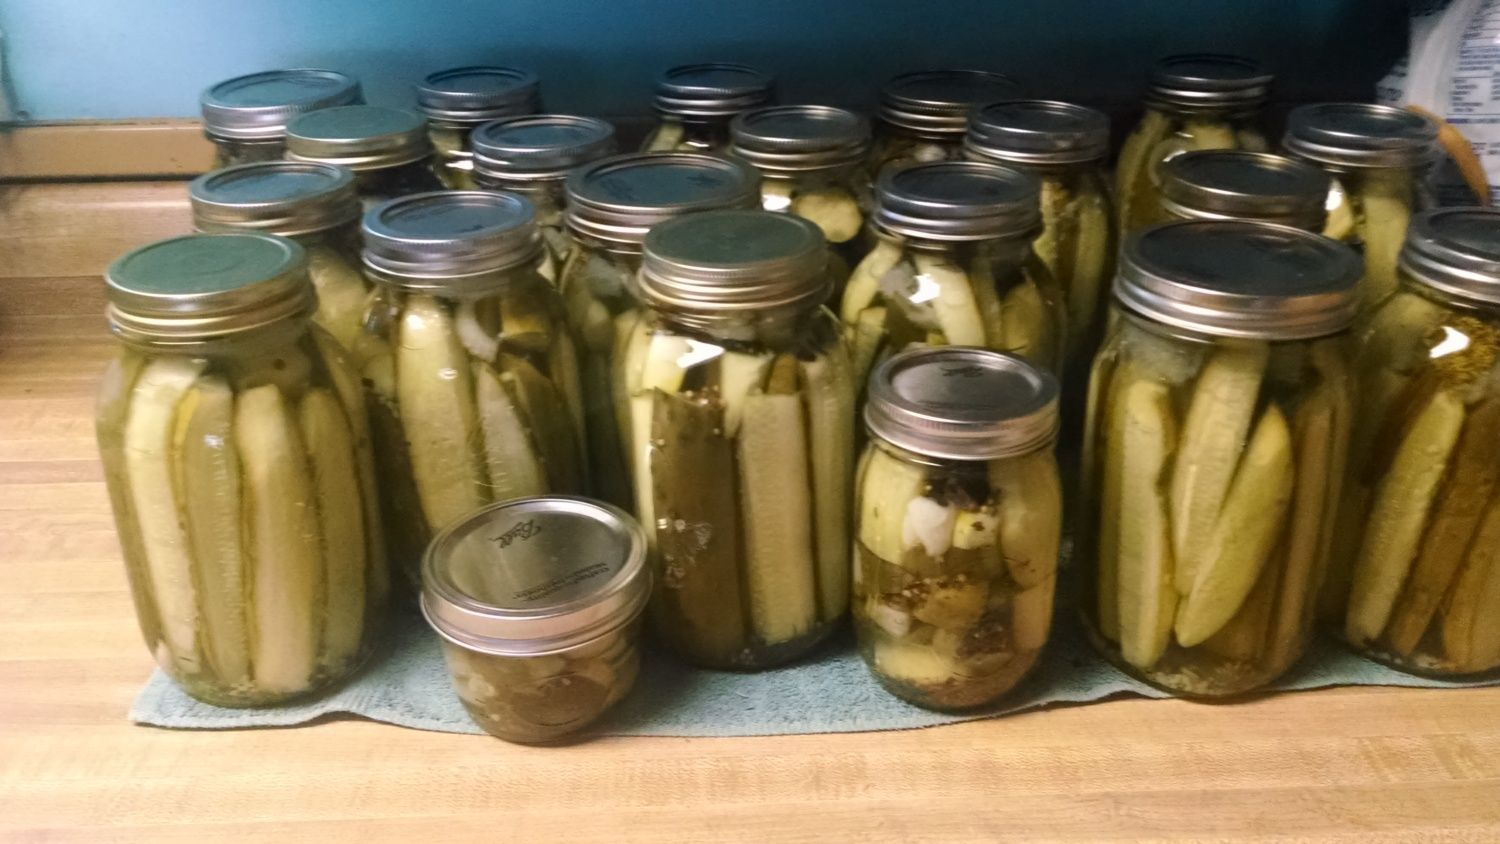 aceschix's photos in What are you canning now?